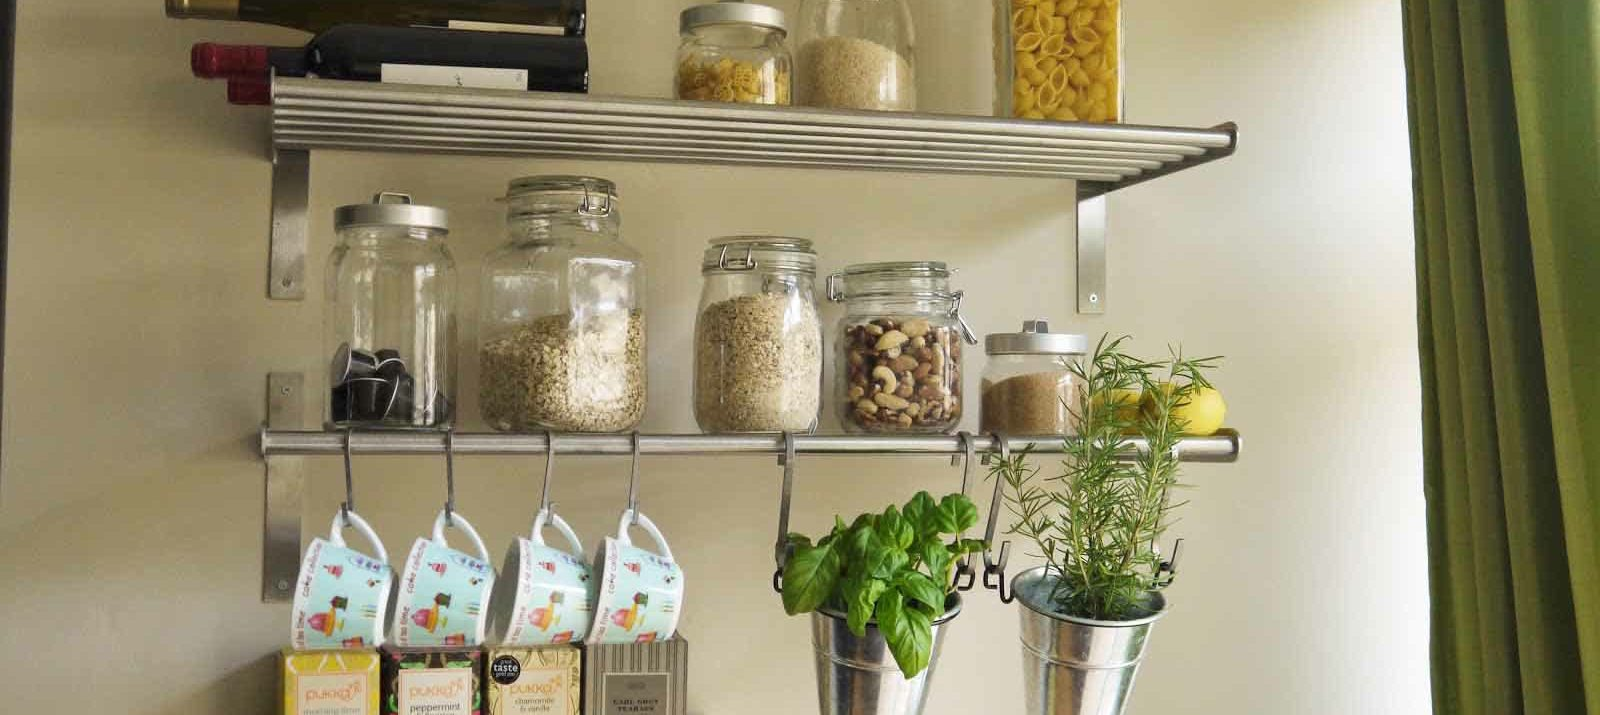 11 Clever And Easy Kitchen Organization Ideas You Ll Love